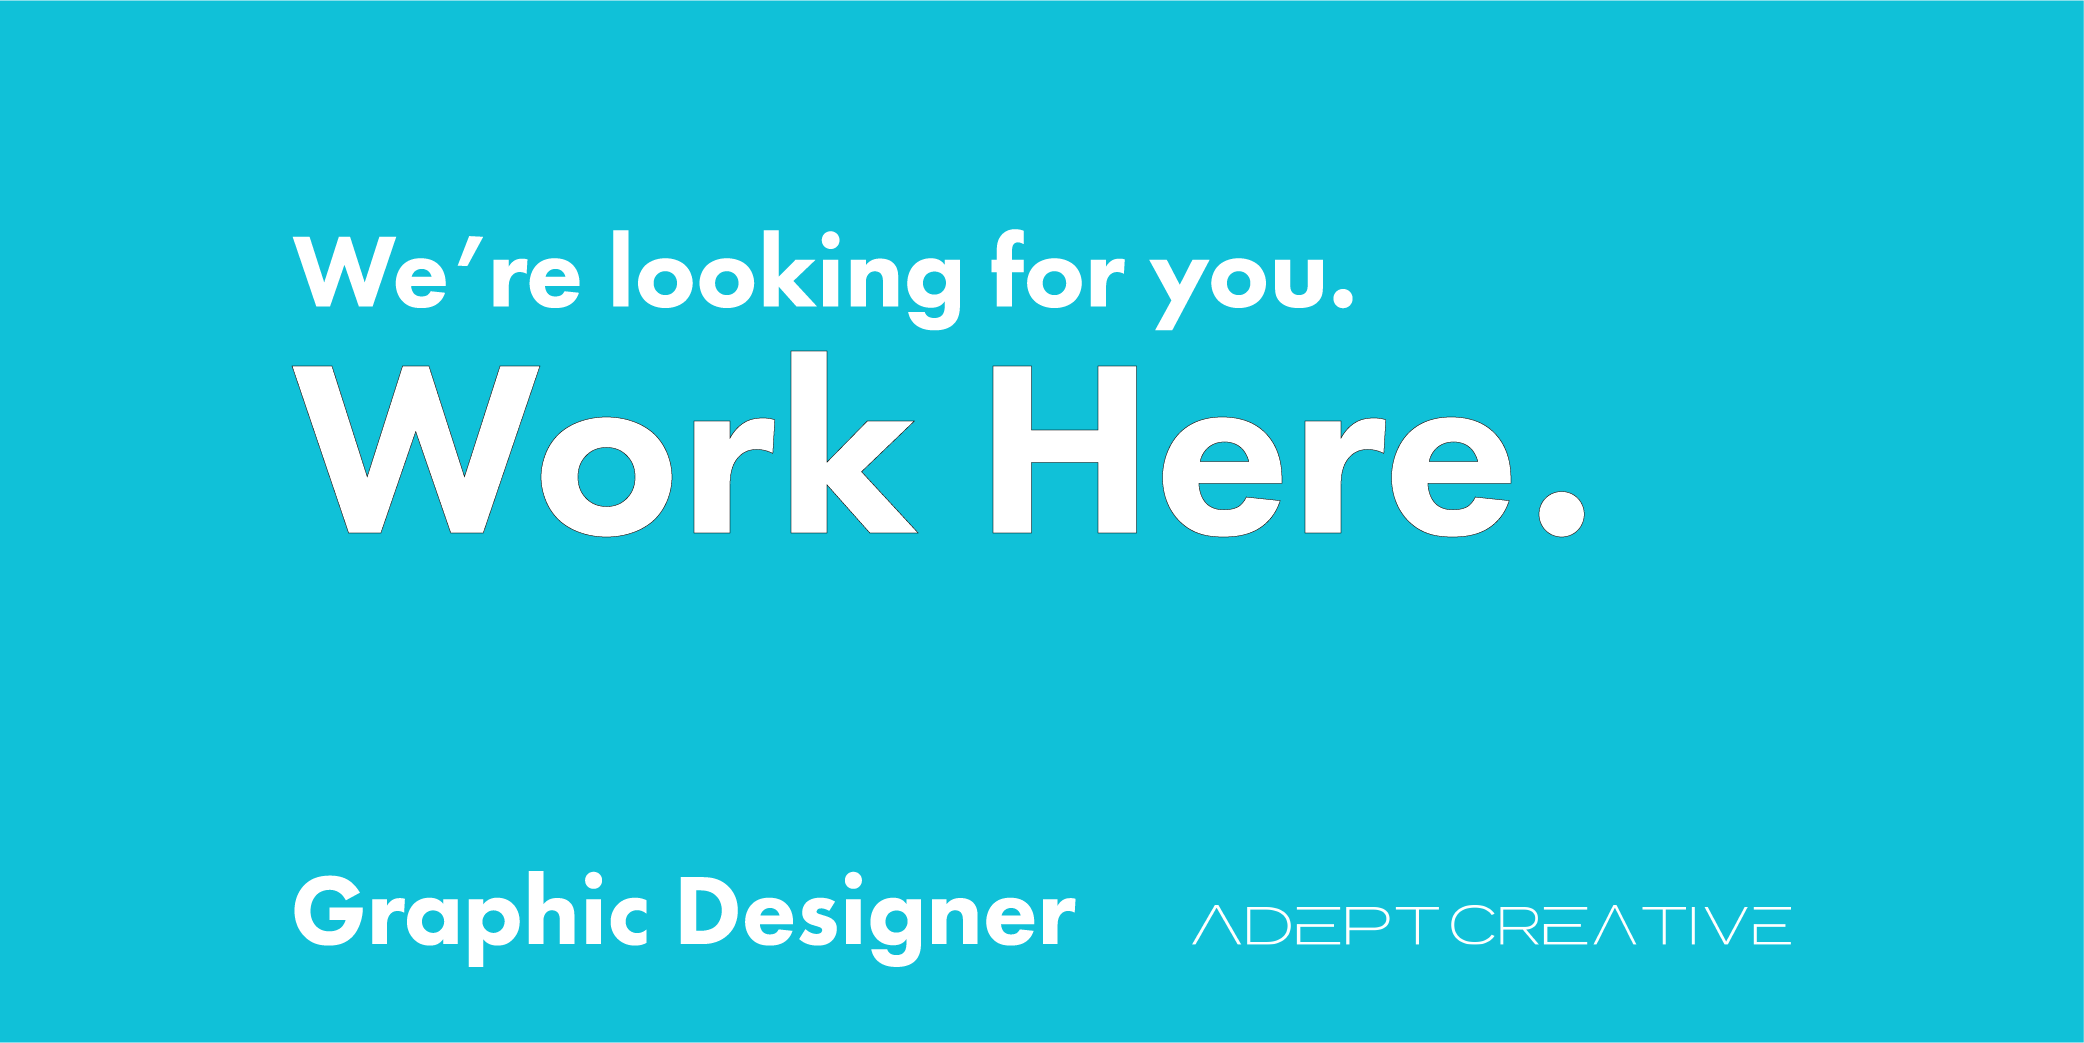 Graphic Designer wanted Work Here